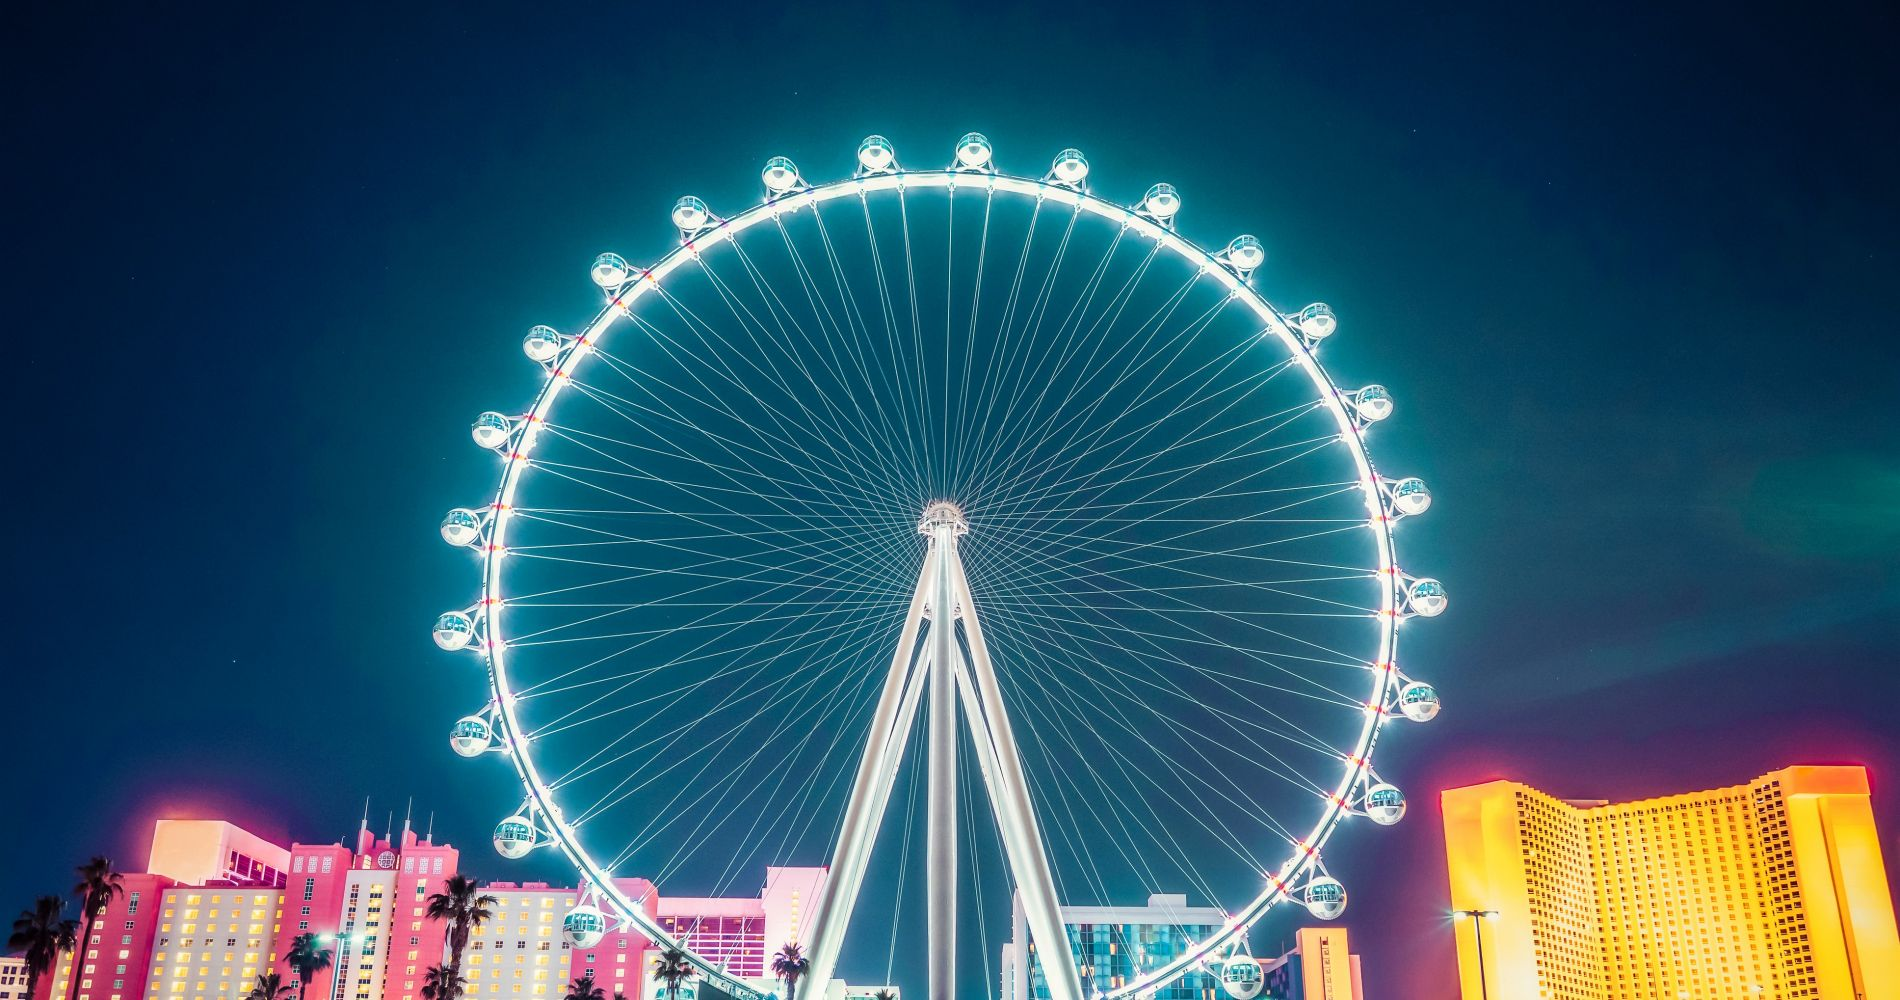 Ticket to High Observation Wheel and other attractions